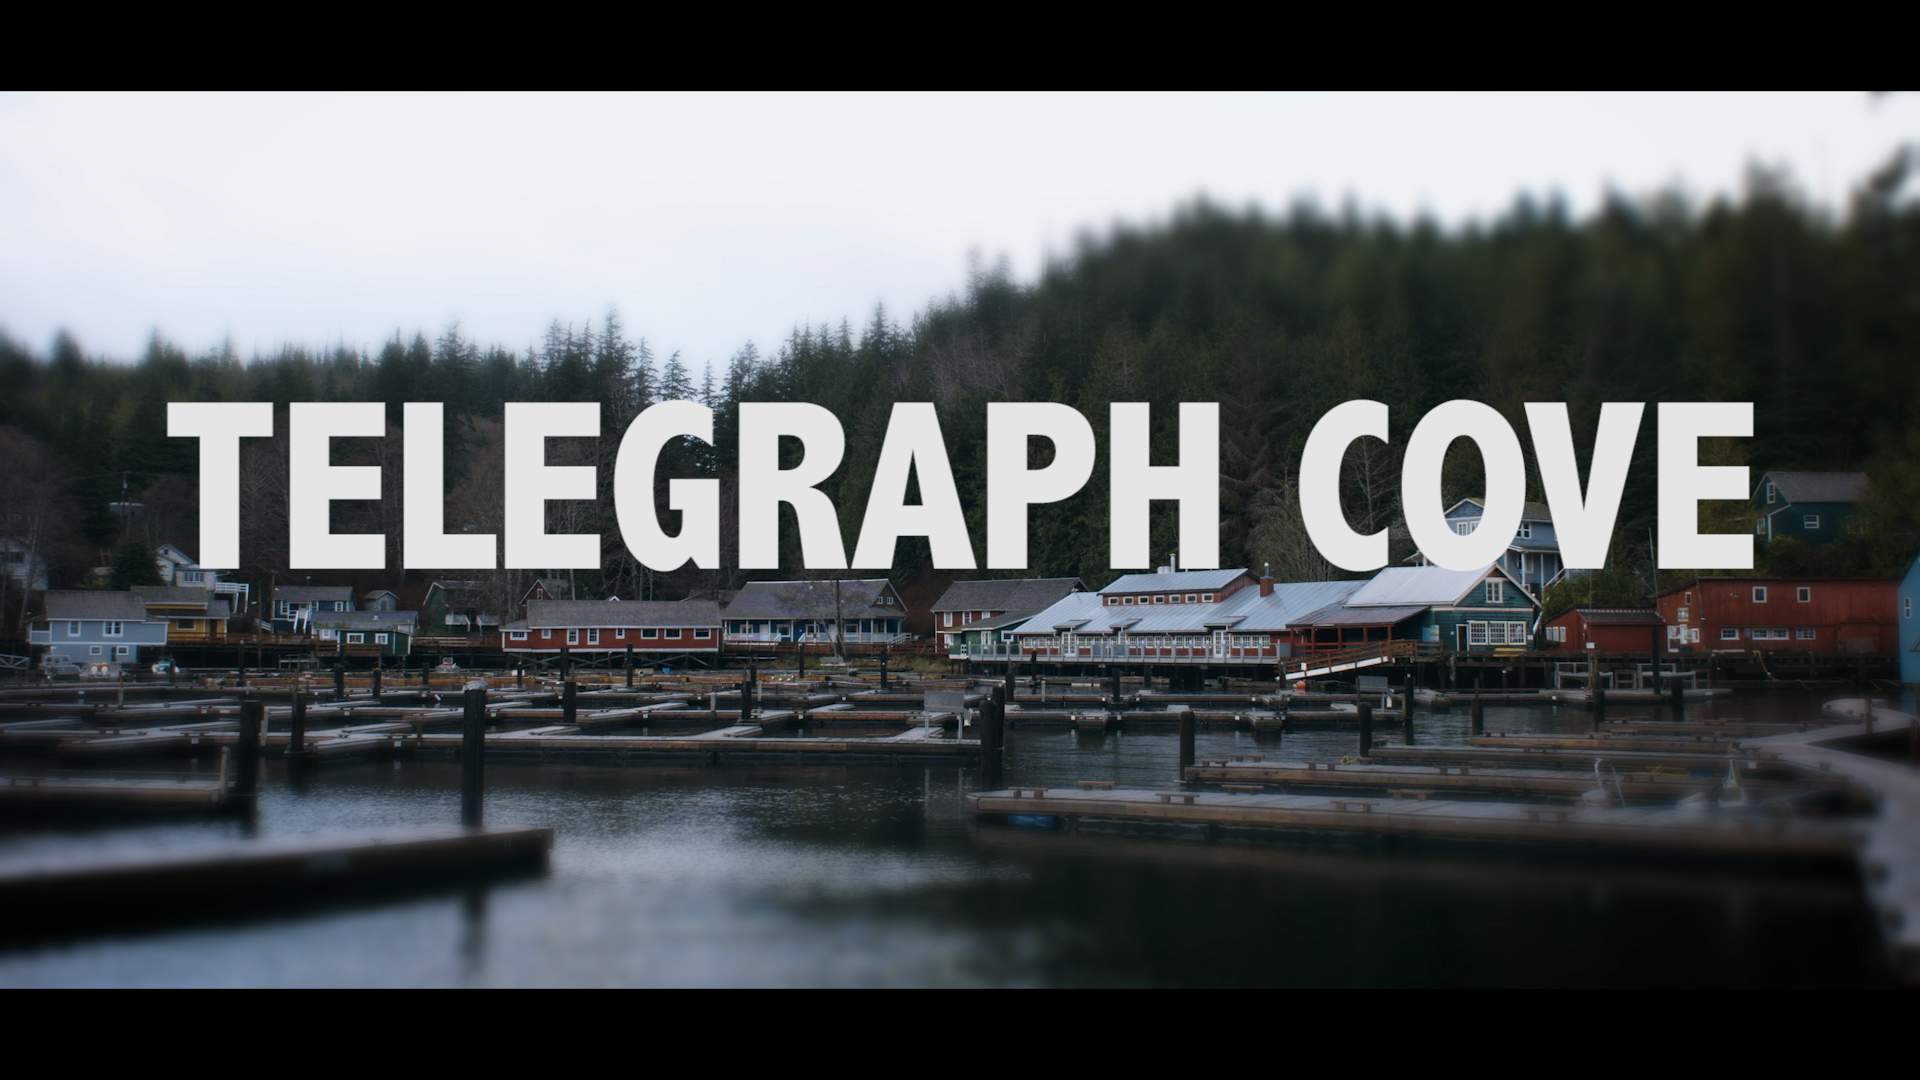 Telegraph Cove promo courtesy of Borrowtime Films